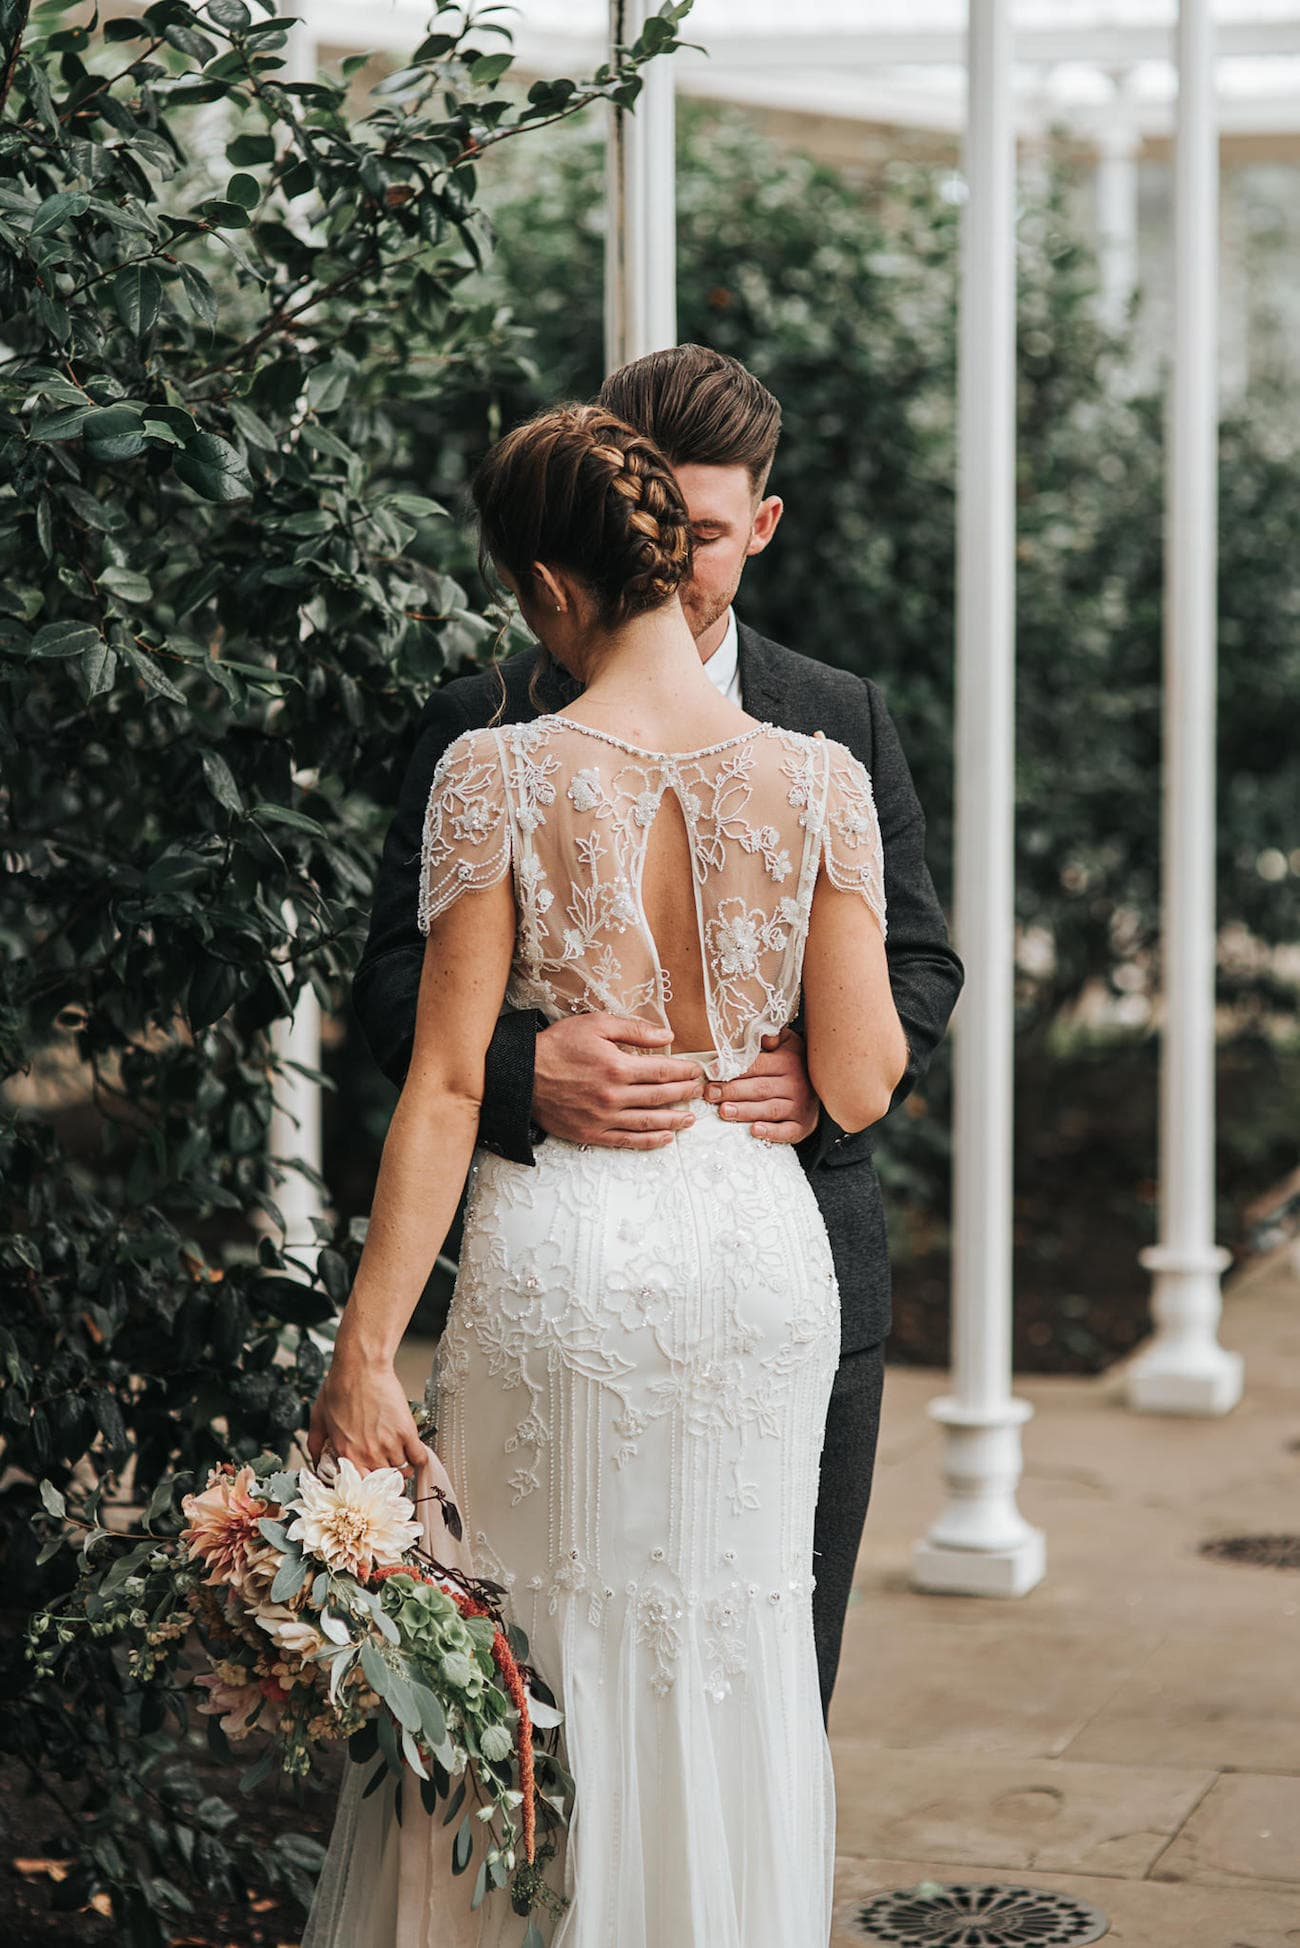 Jenny Packham Wedding Dress with Lace Overlay and Back Detail | Image: Pear & Bear Photography